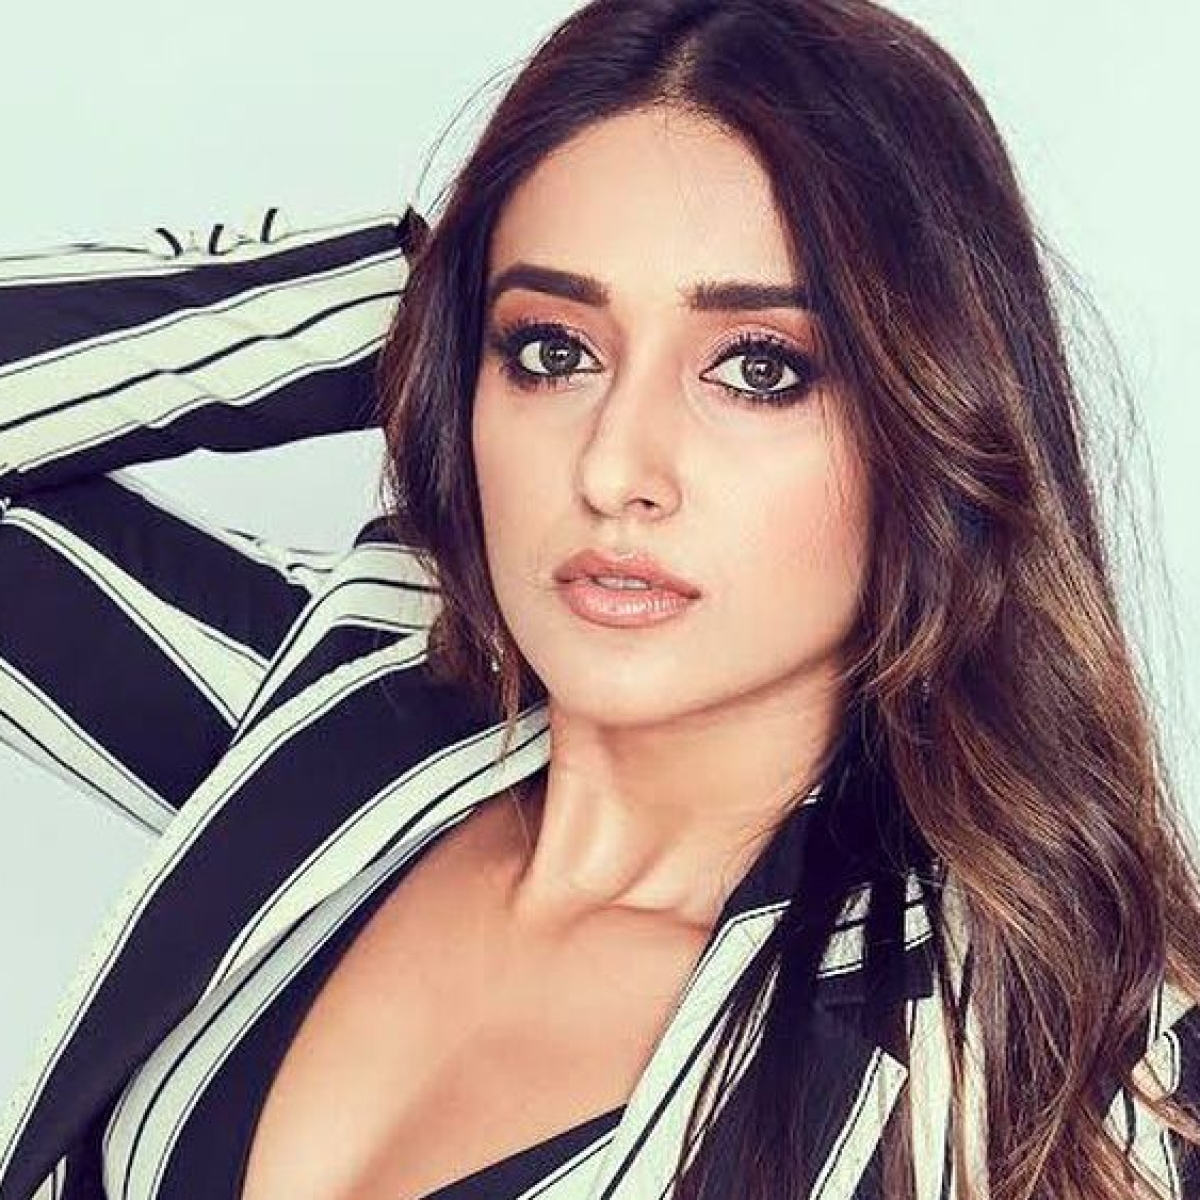 'I was unsure of myself,': Ileana D'Cruz reveals why she signed fewer films in Bollywood than the South